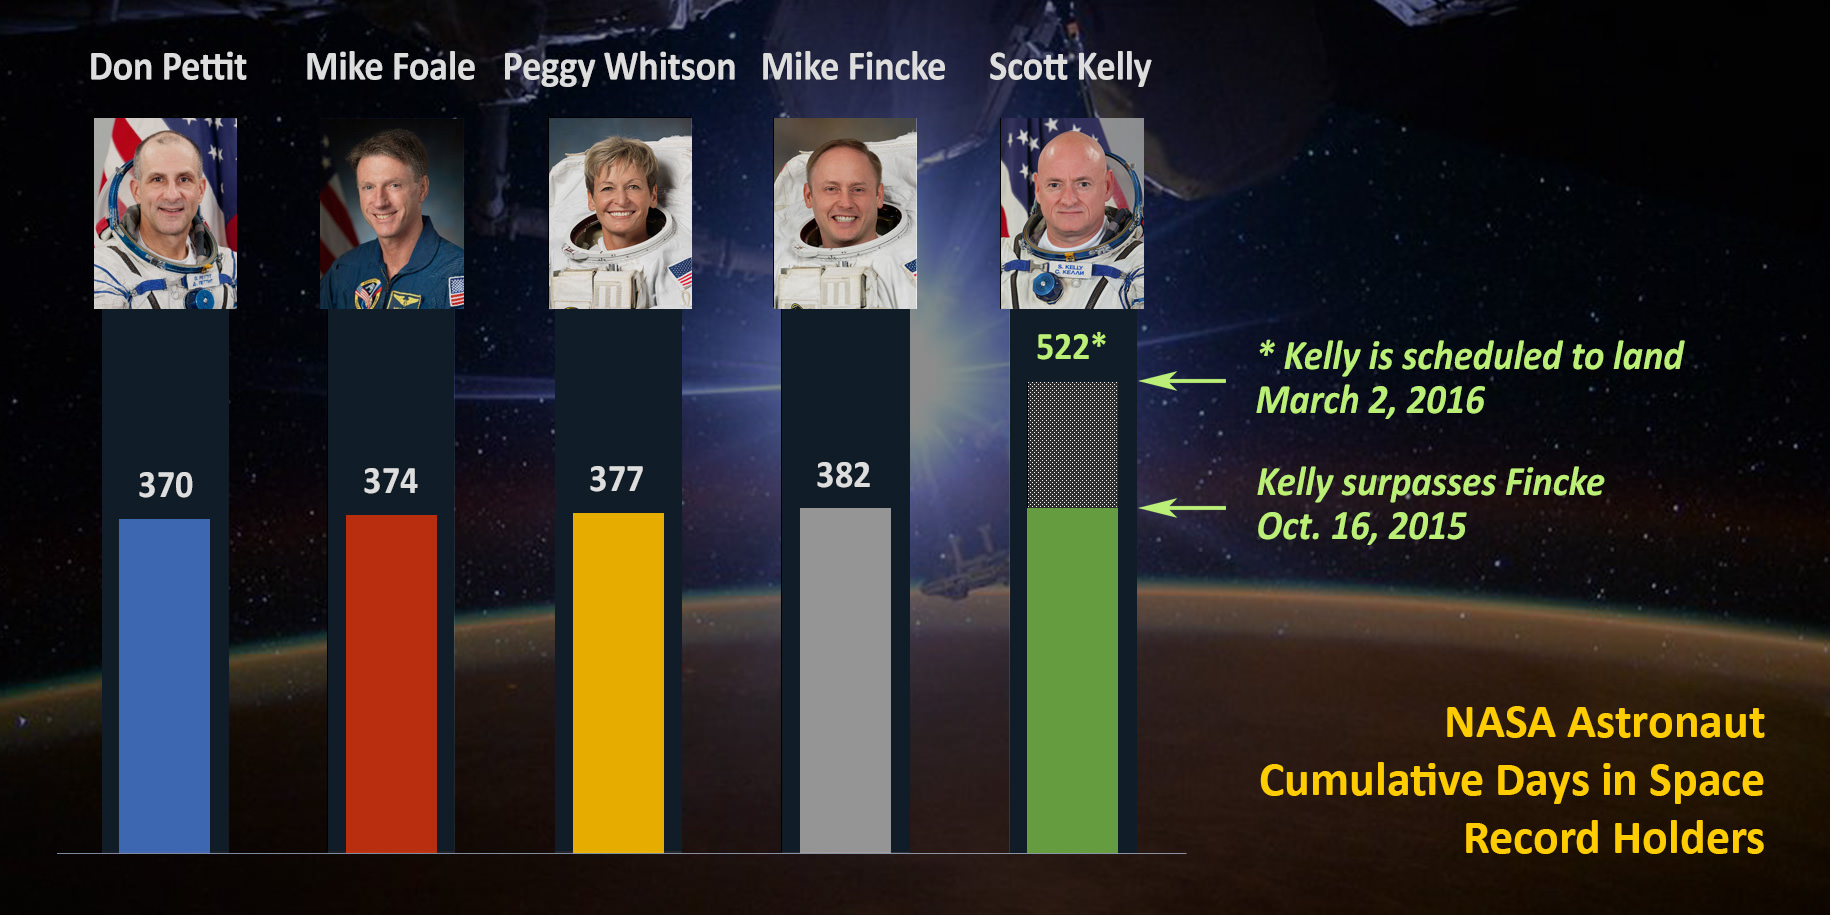 Station Commander Scott Kelly passed astronaut Mike Fincke, also a former station commander, on Oct. 16, 2015, for most cumulative days living and working in space by a NASA astronaut (383 days and counting). Kelly is scheduled to come home March 2, 2016, for a record total 522 days in space.  Credit: NASA